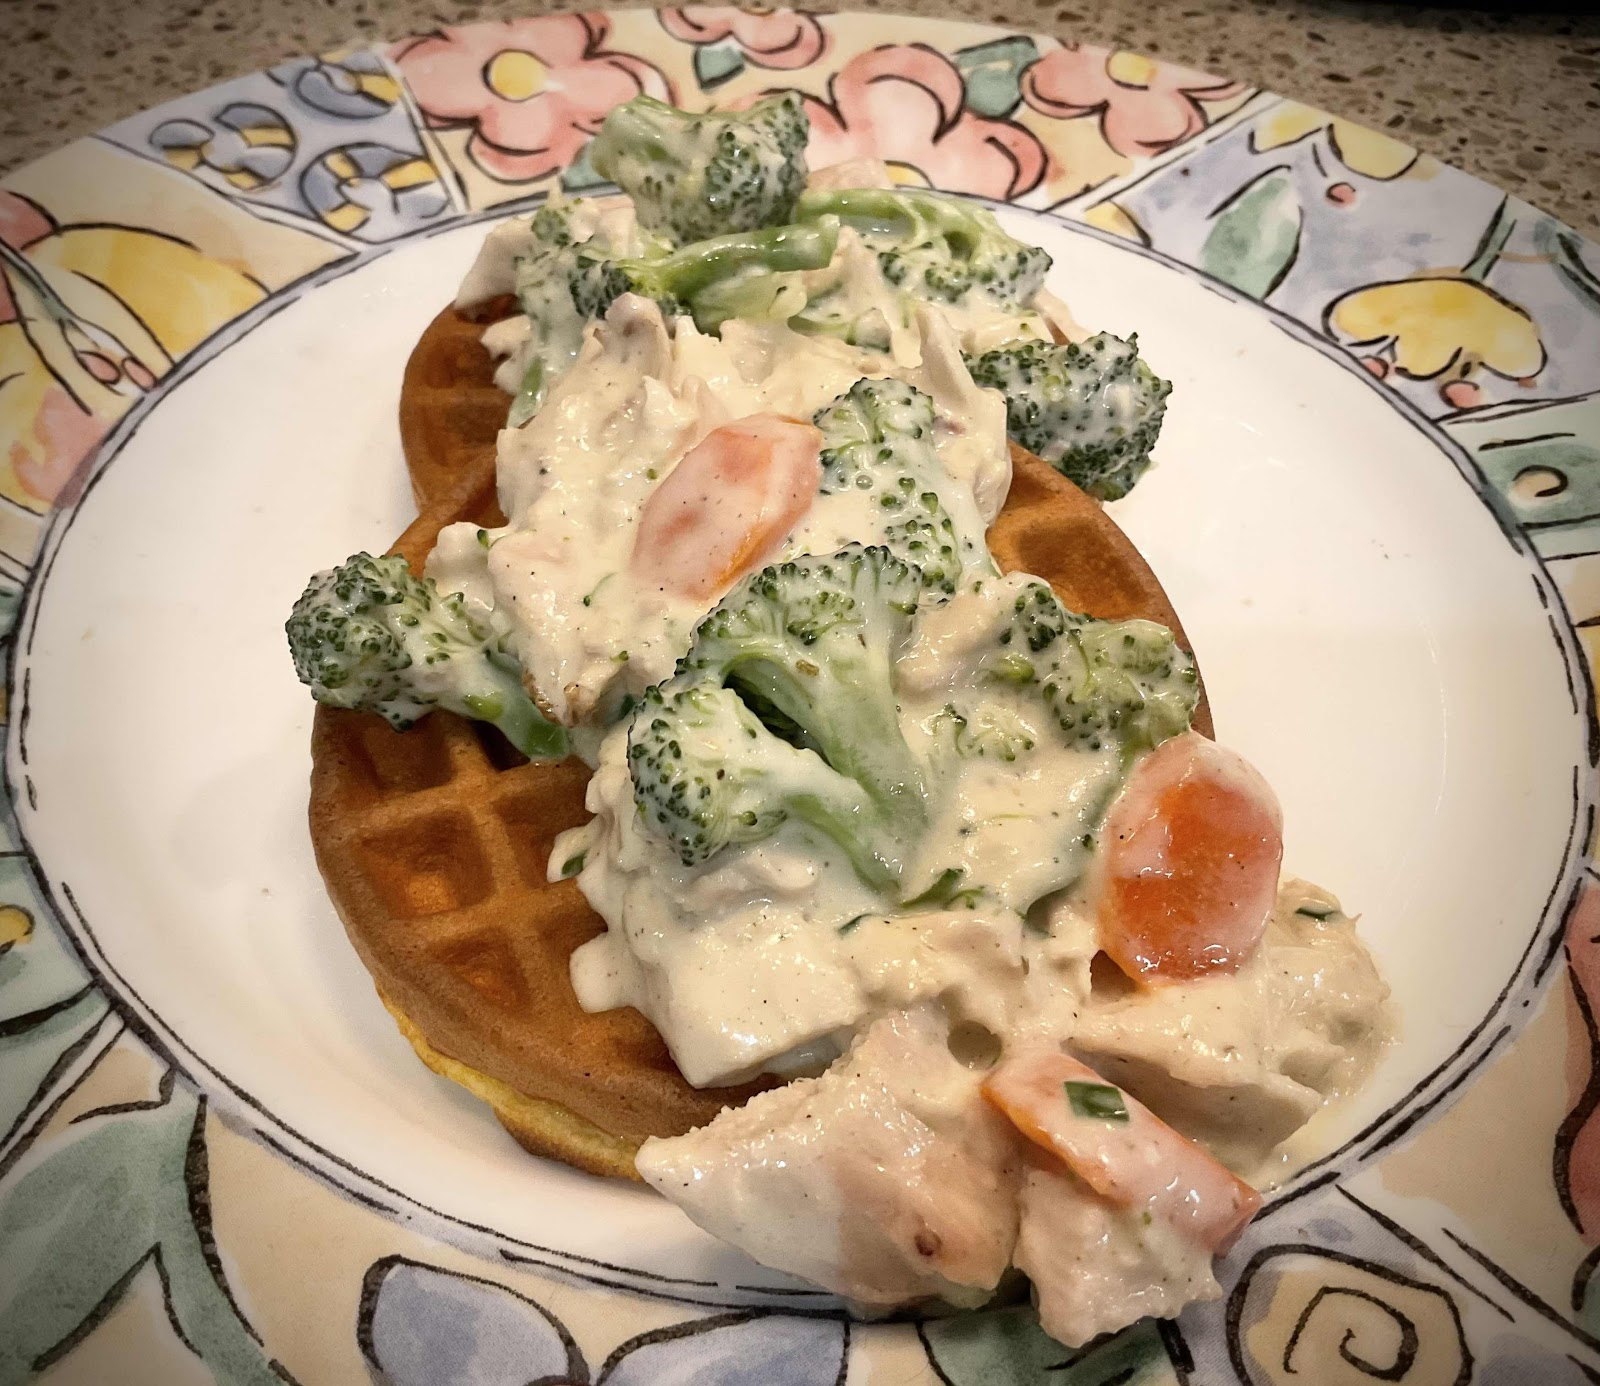 Creamed Chicken and Vegetables over Chaffles